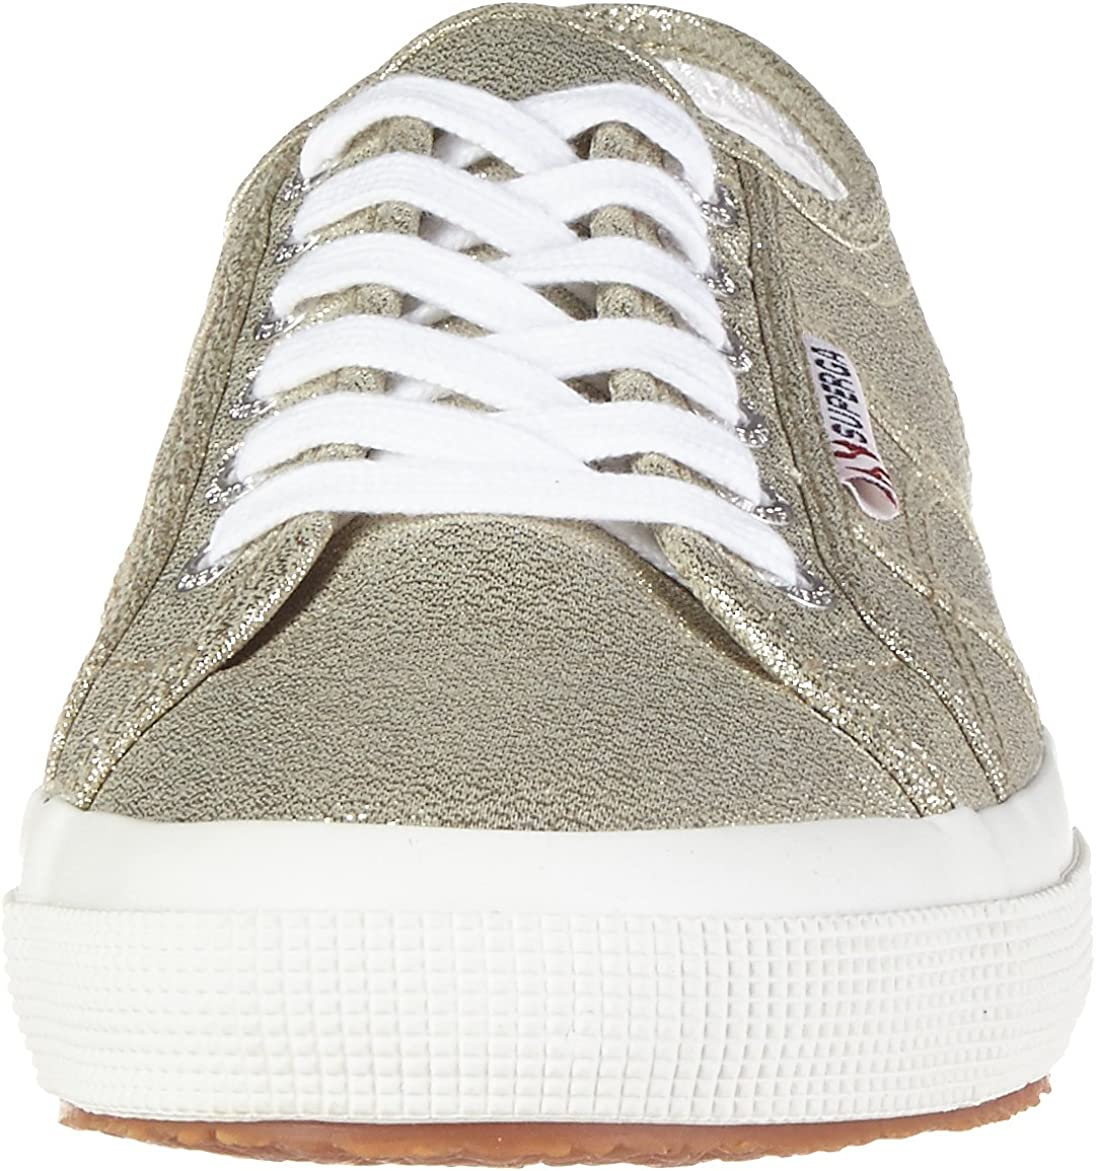 Superga Womens Low-Top Sneakers